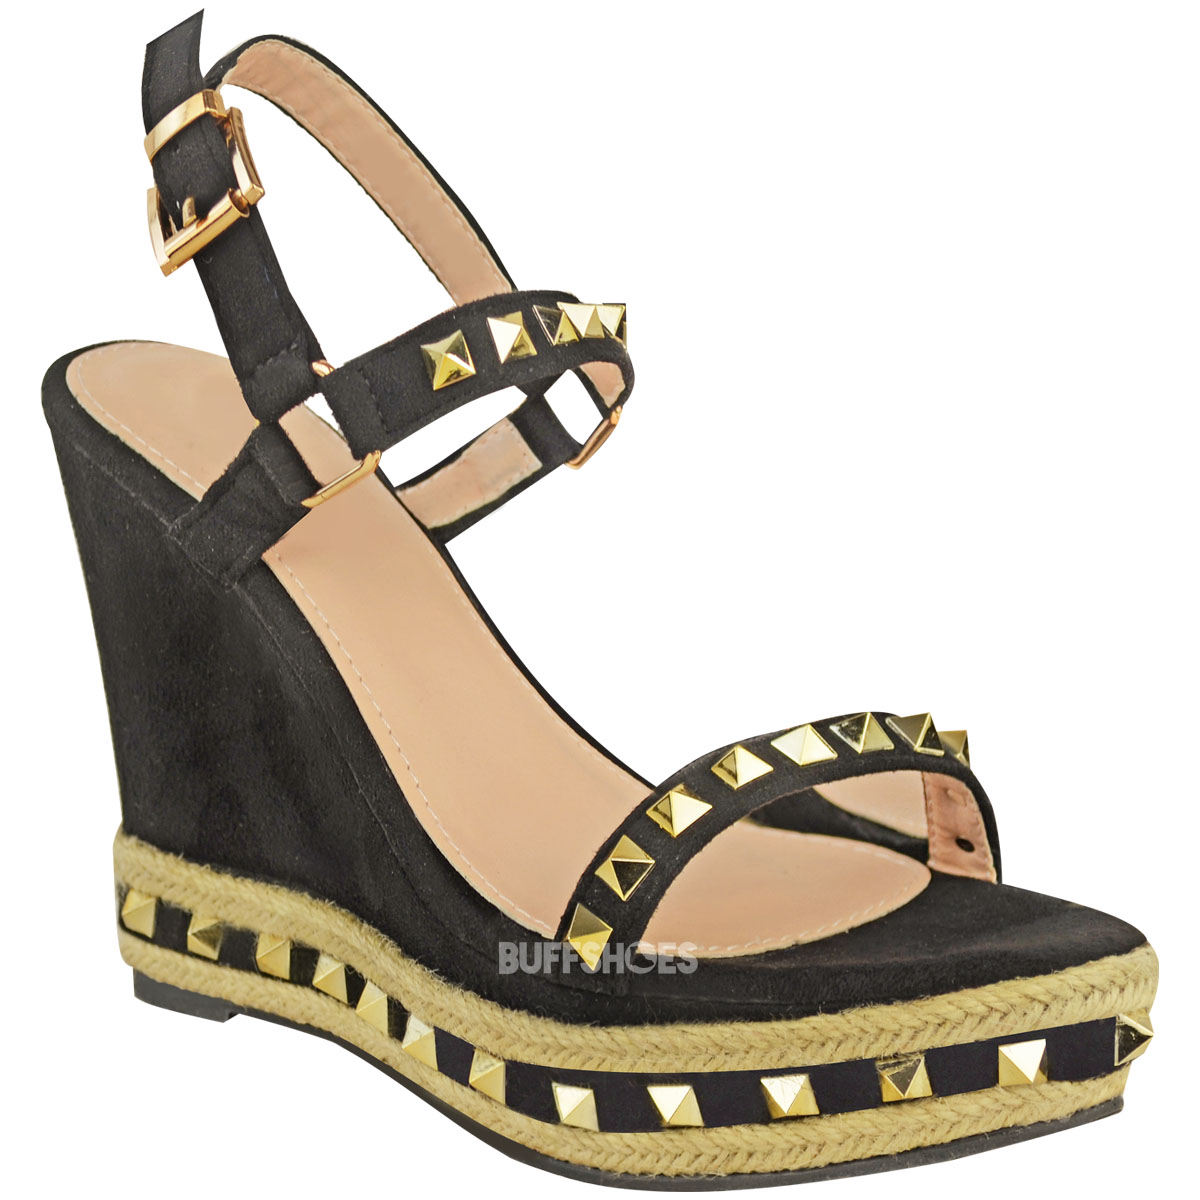 Details about Womens Ladies Studded Espadrille Wedge High Heel Sandals Ankle Strap Shoes Size